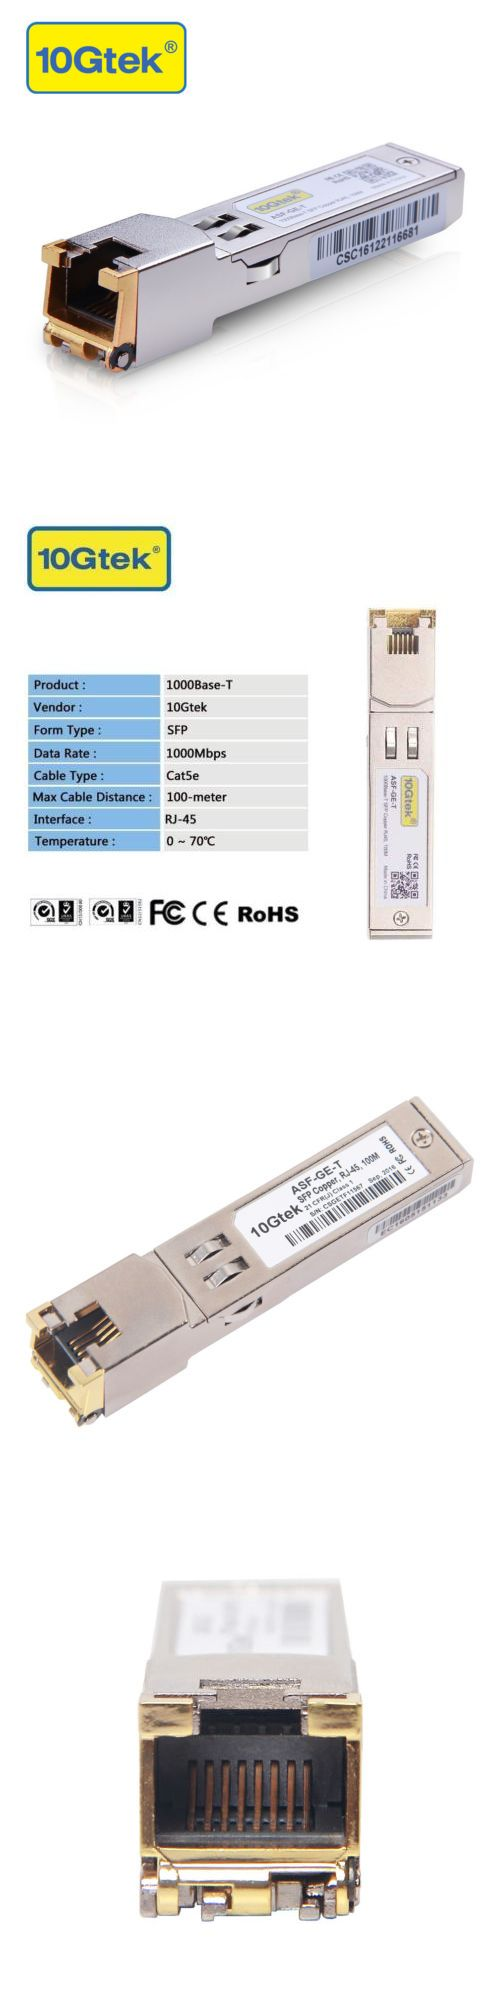 Switches And Hubs 182091 Glc T For Cisco 1000base T Sfp Optic Fiber Module Cat5e Copper Rj45 100m Buy It Now Only 17 35 On Eba Rj45 Cisco Switch Optical